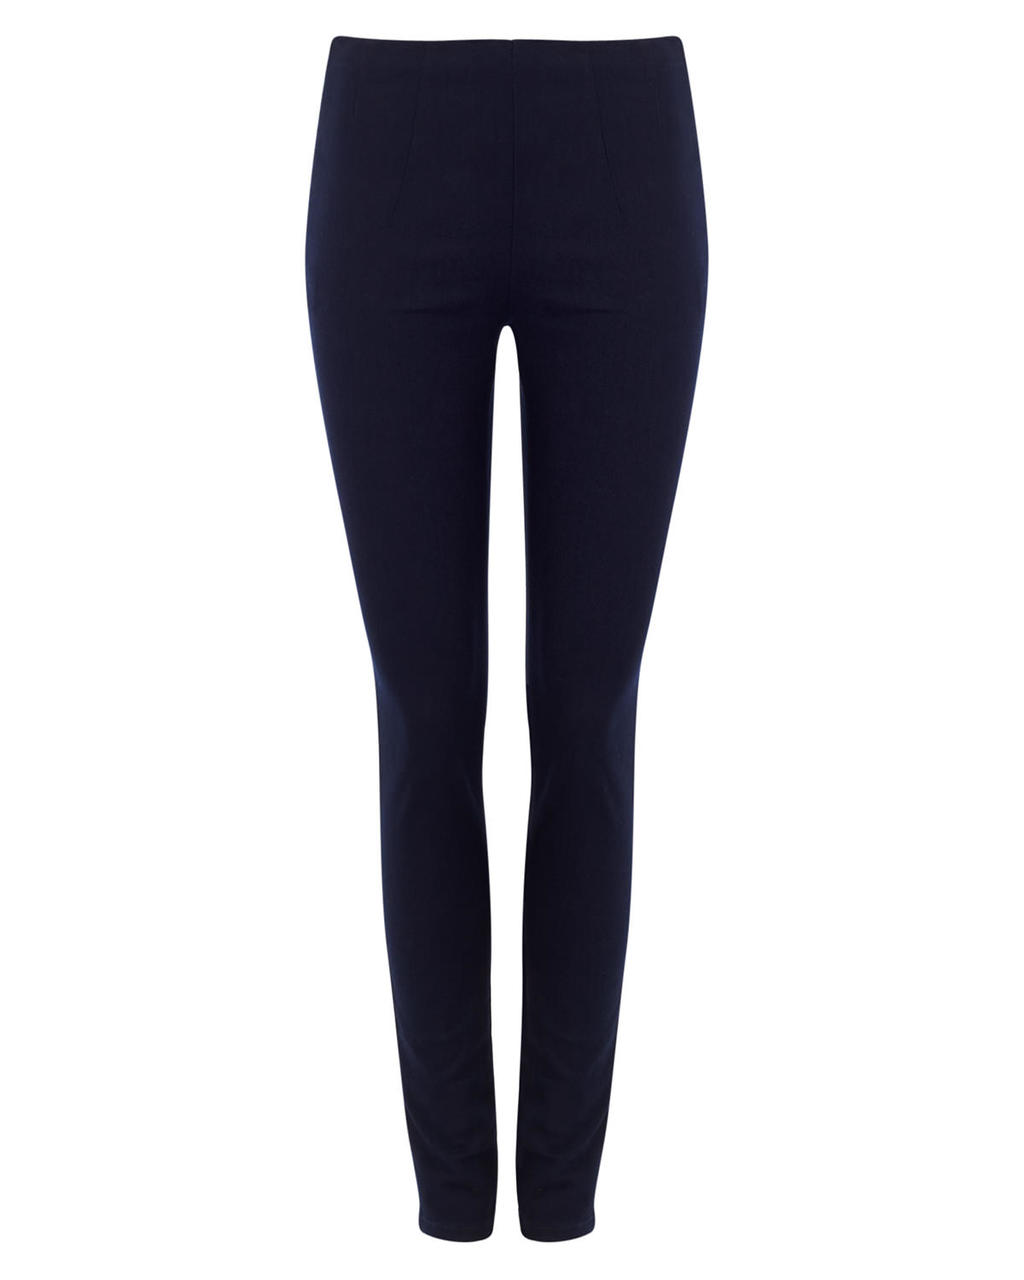 Lois Trouser - pattern: plain; waist: mid/regular rise; predominant colour: navy; occasions: casual, creative work; length: ankle length; fibres: viscose/rayon - stretch; fit: skinny/tight leg; pattern type: fabric; texture group: other - clingy; style: standard; season: a/w 2015; wardrobe: basic